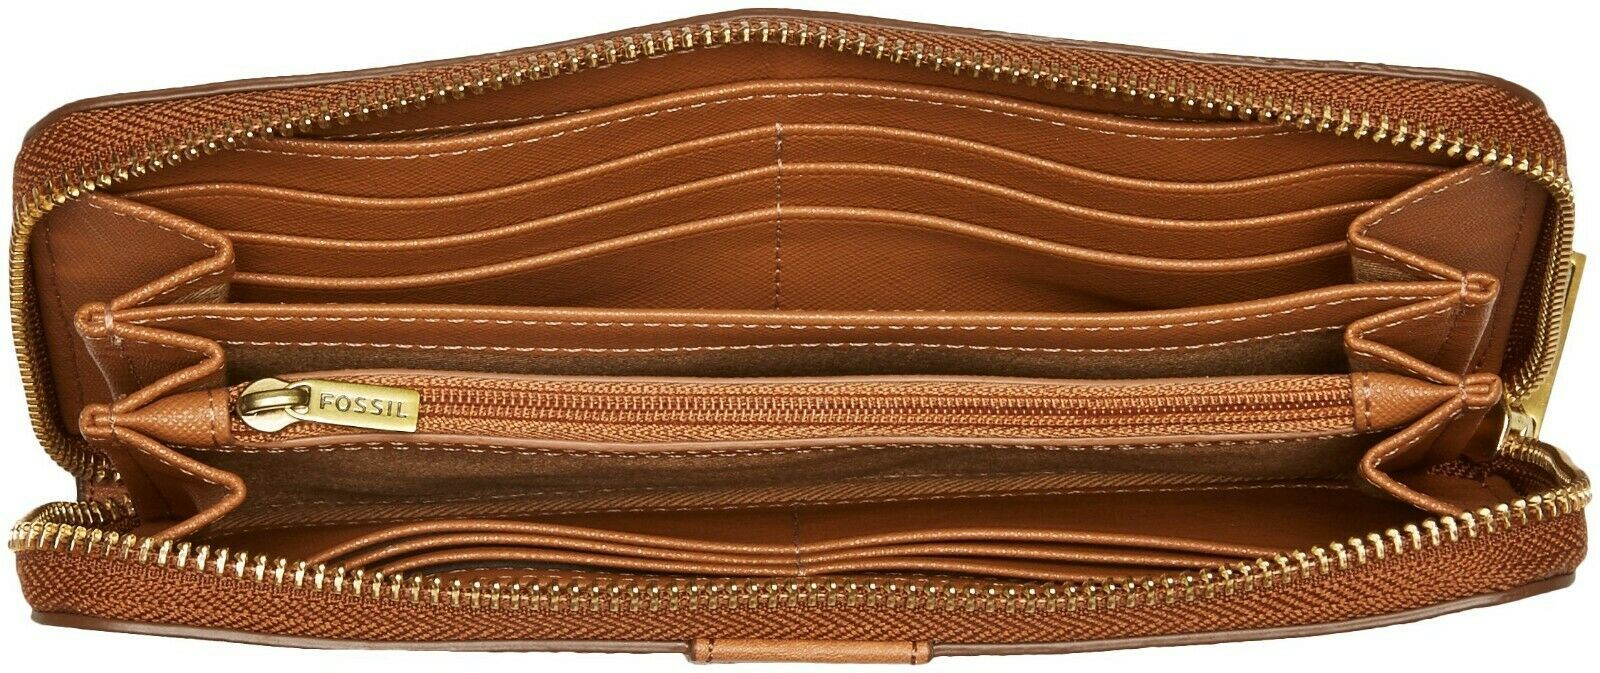 NWT Fossil Women's Emma Large Zip Clutch Wallet, White/Brown